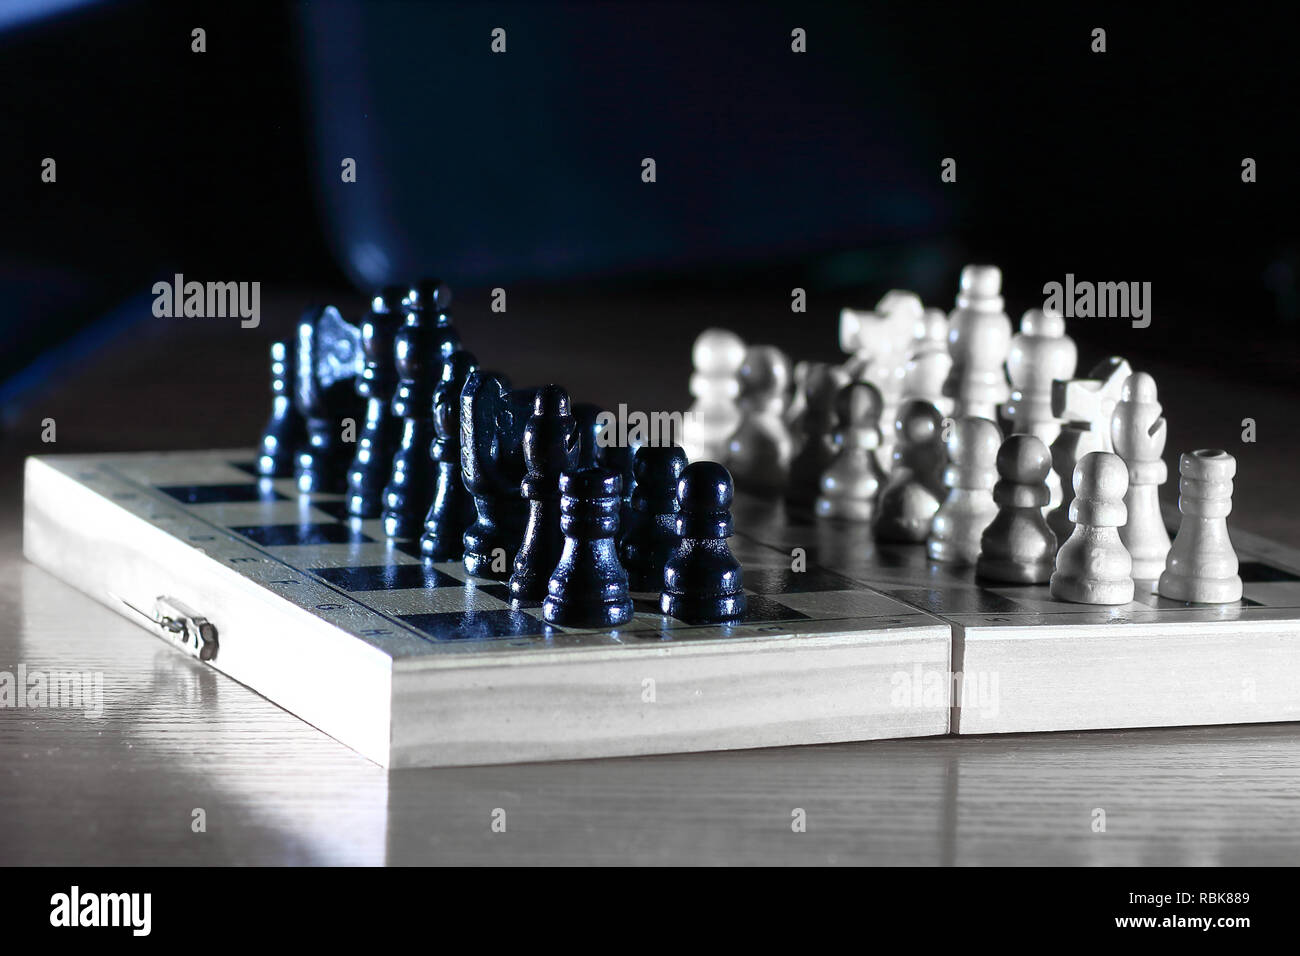 chess composition on dark background. strategy concept - Stock Image